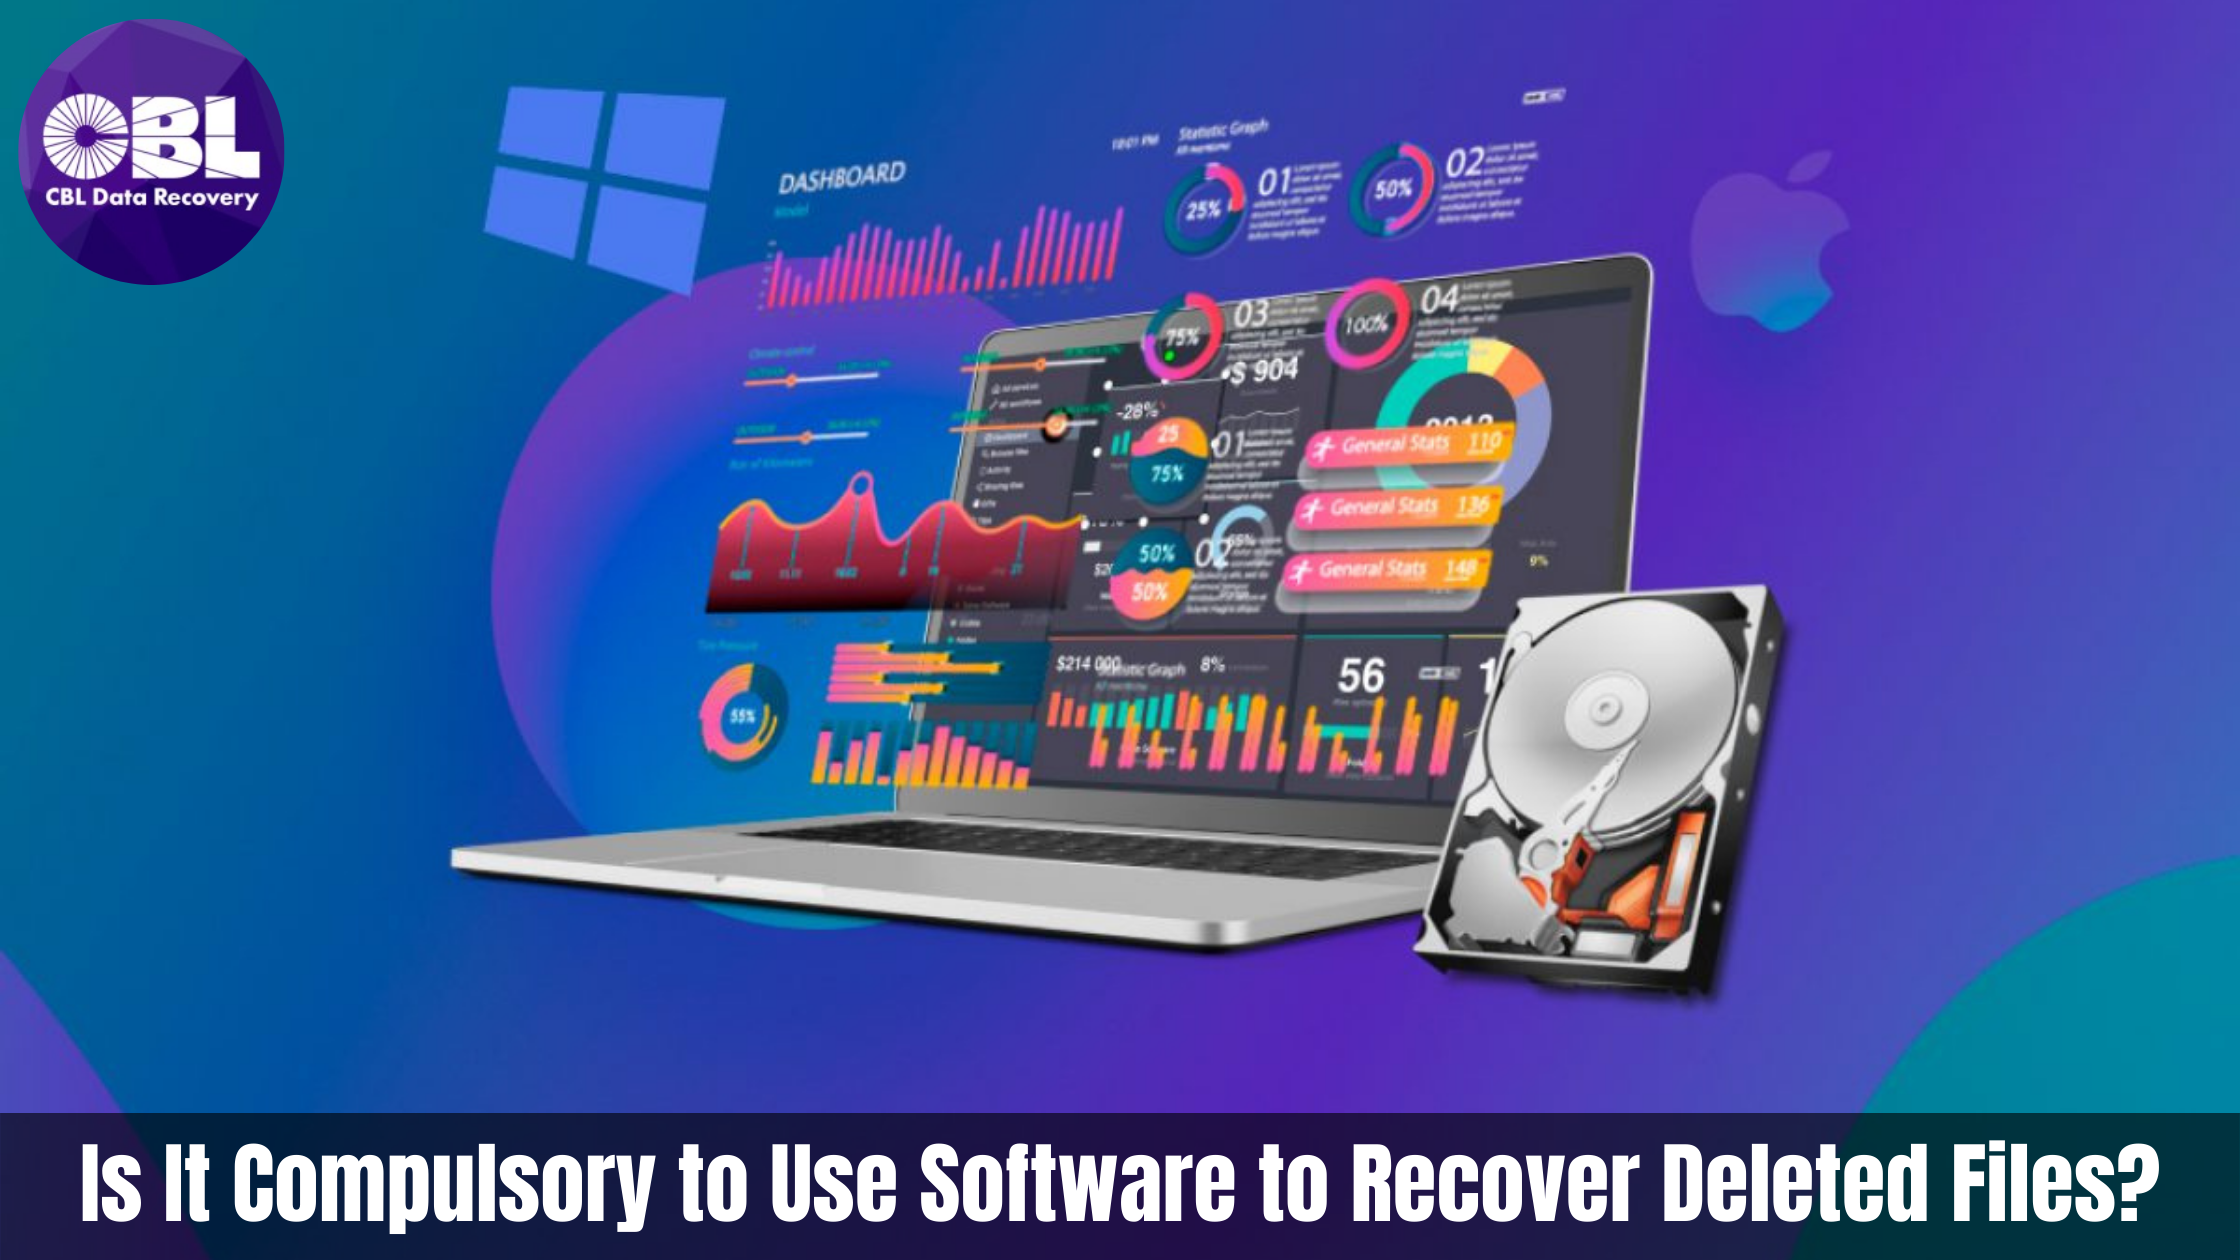 Is It Compulsory to Use Software to Recover Deleted Files?